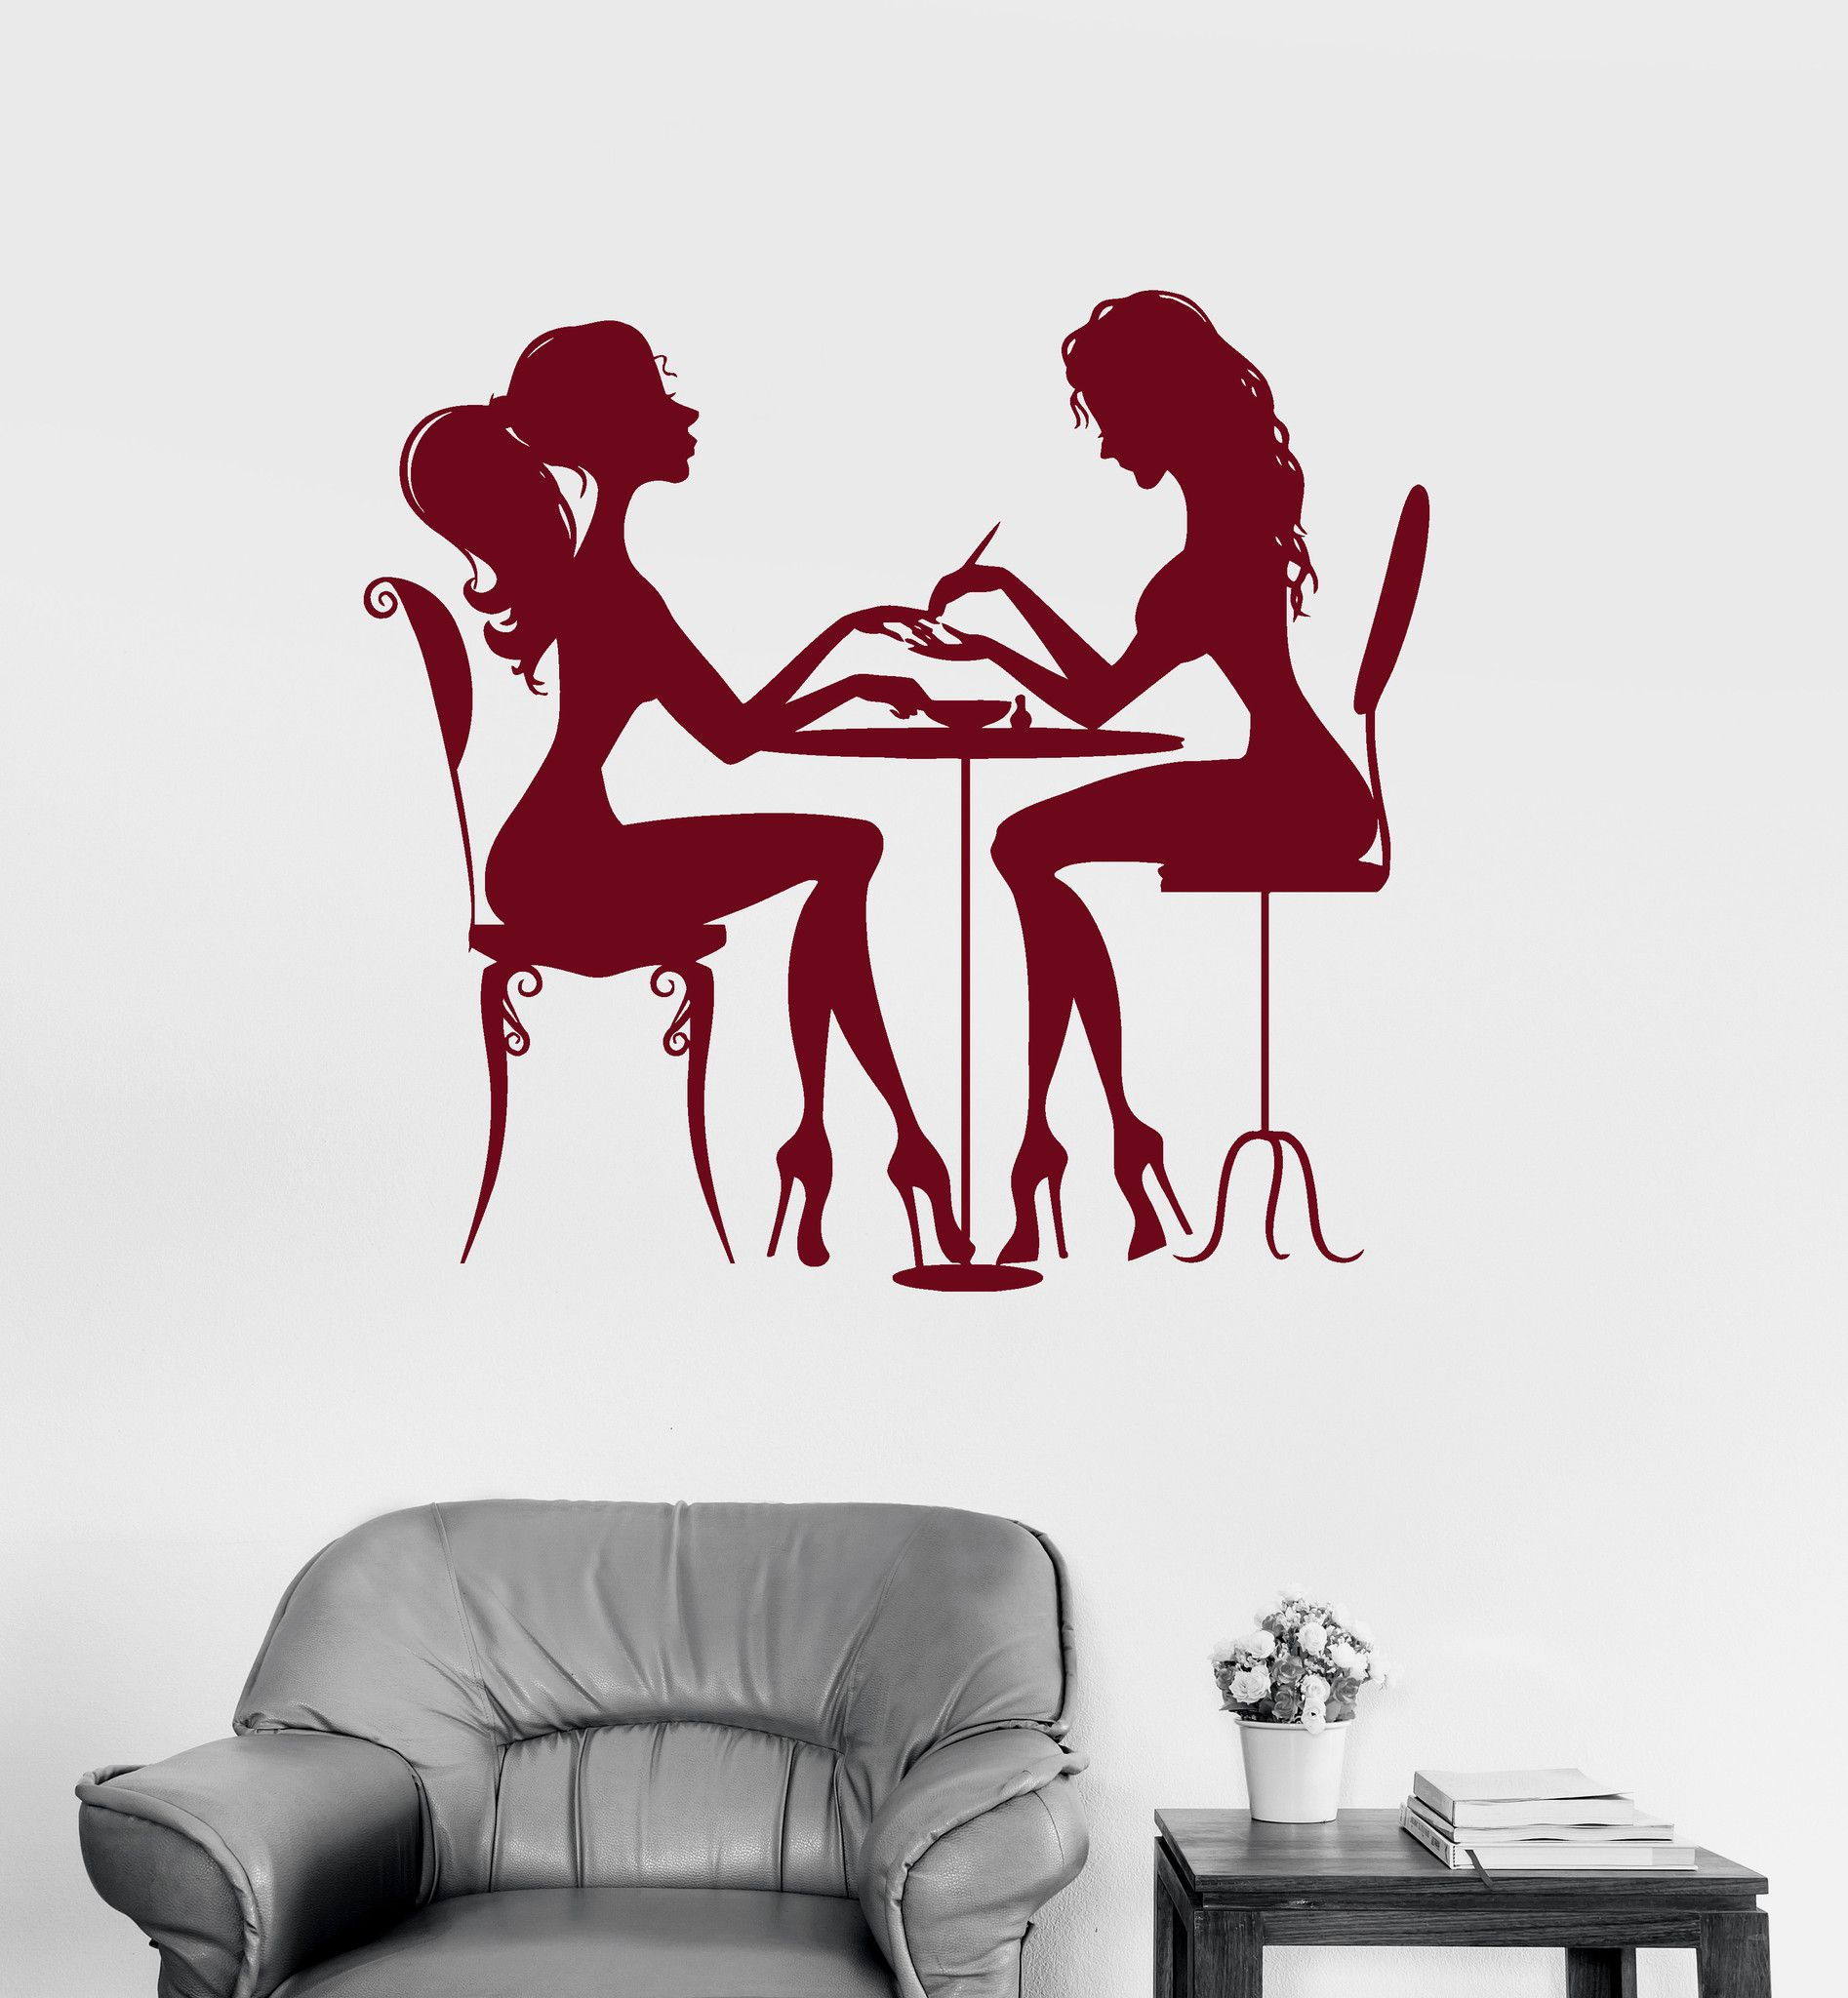 Sell Paparazzi In A Beauty Salon Nail Salon: Our Vinyl Stickers Are Unique And One Of A Kind! Every